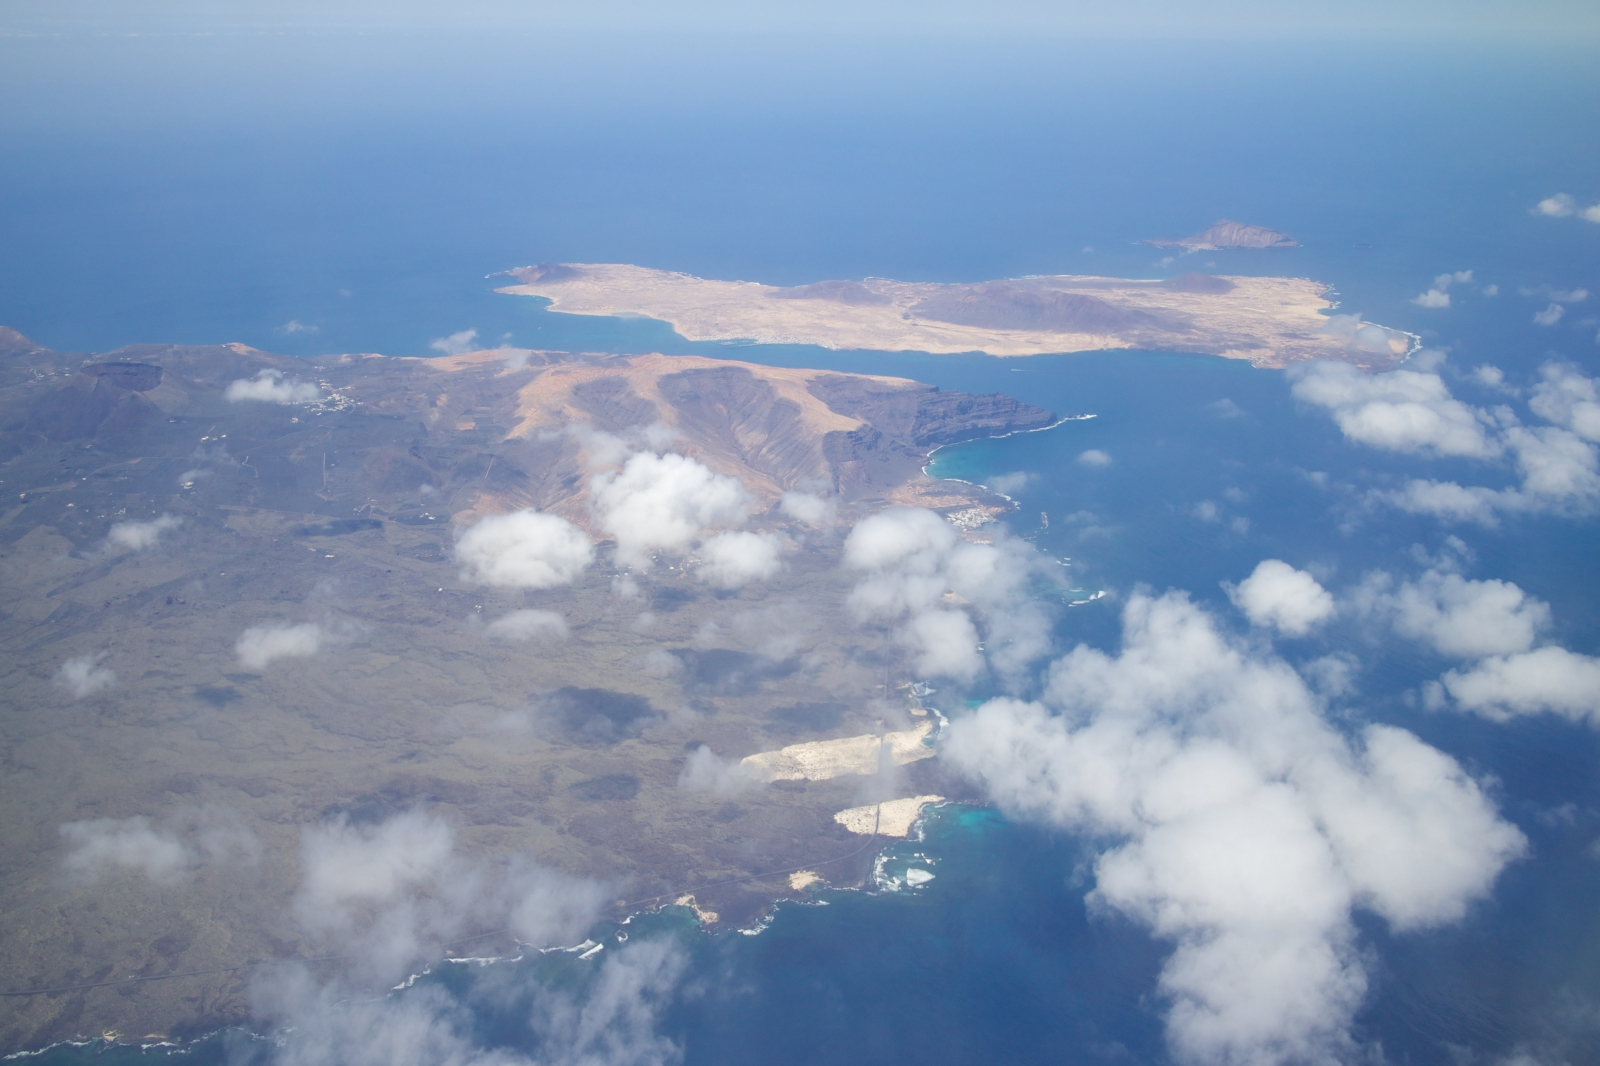 'View on Lanzarote island from an airplane' - Lanzarote